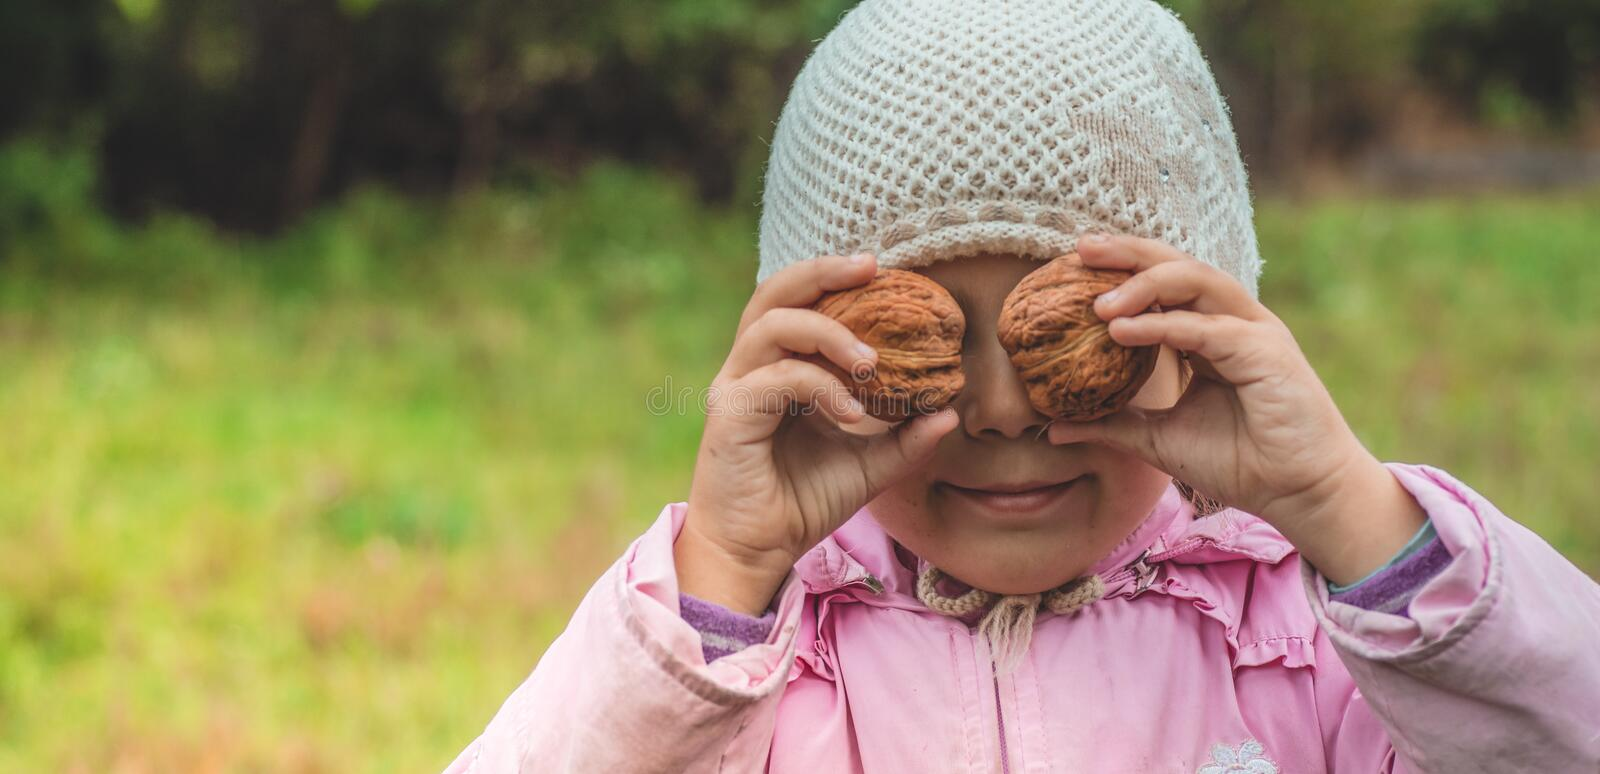 Playing outdoors cute little girl holding a nuts in front of her. Nuts harvests. Autumn in the garden, the girl and large nuts stock photography